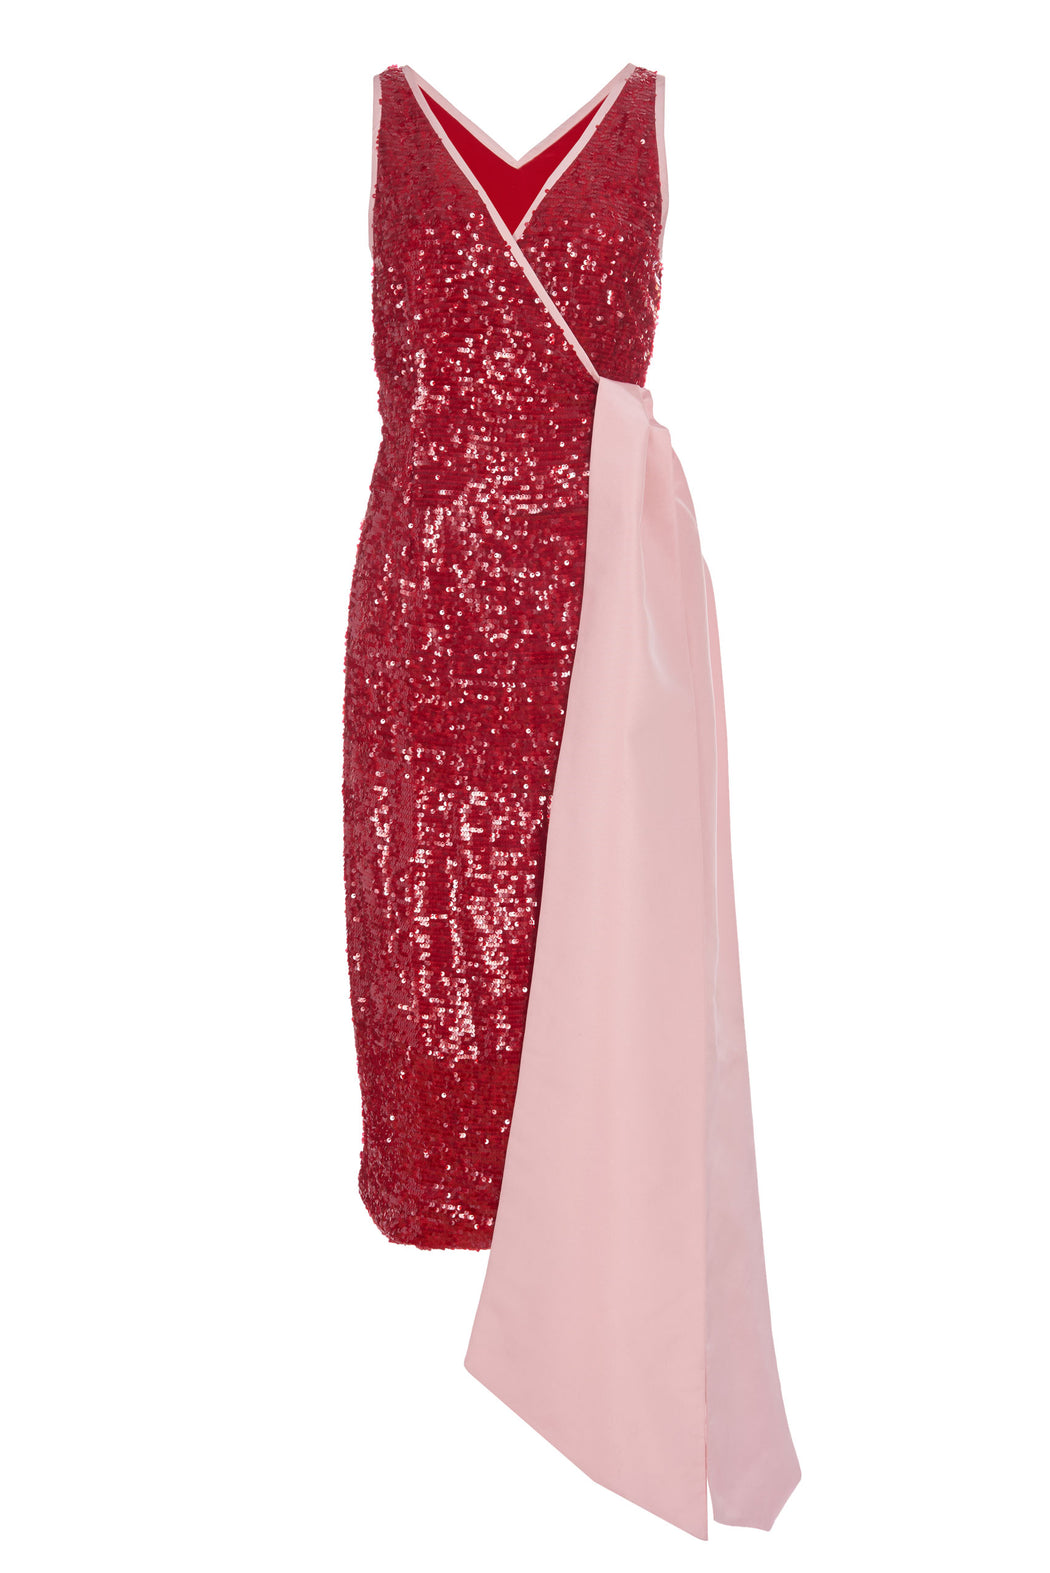 Fernande Red Sequin Wrap Dress with Pink Faille Trim